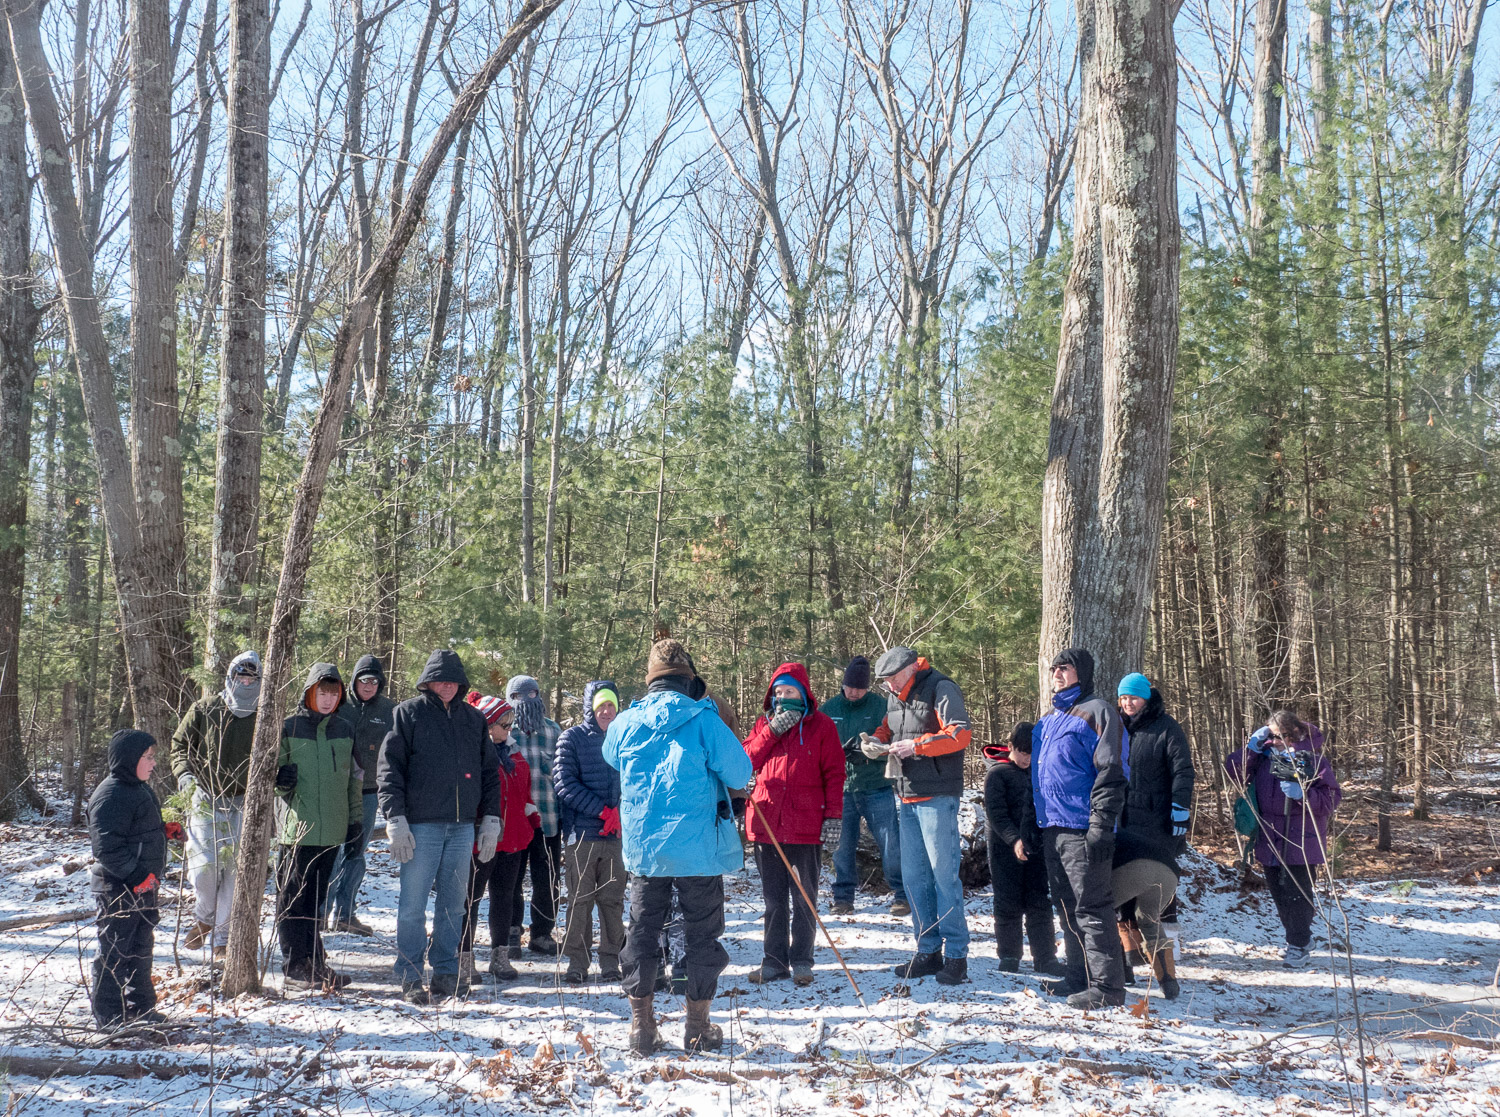 The group gathers for a talk along the Wetland Trail.